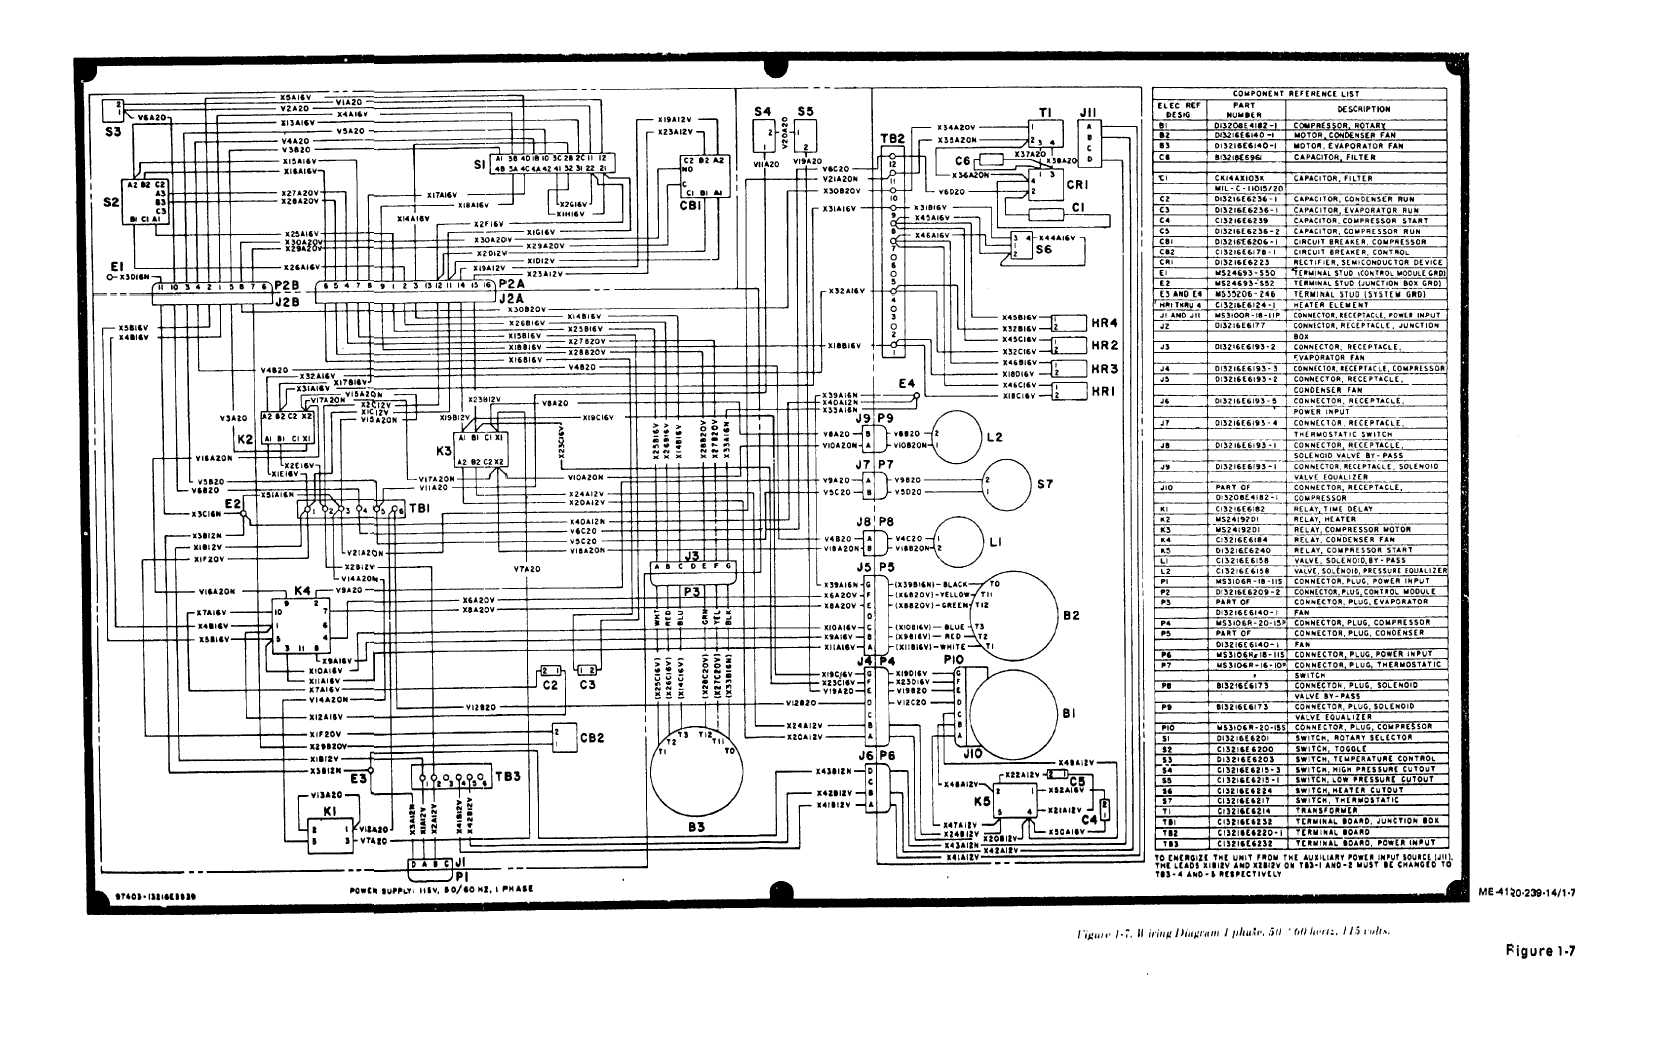 230 volt wiring diagram printable pyramid for 1 phase motor get